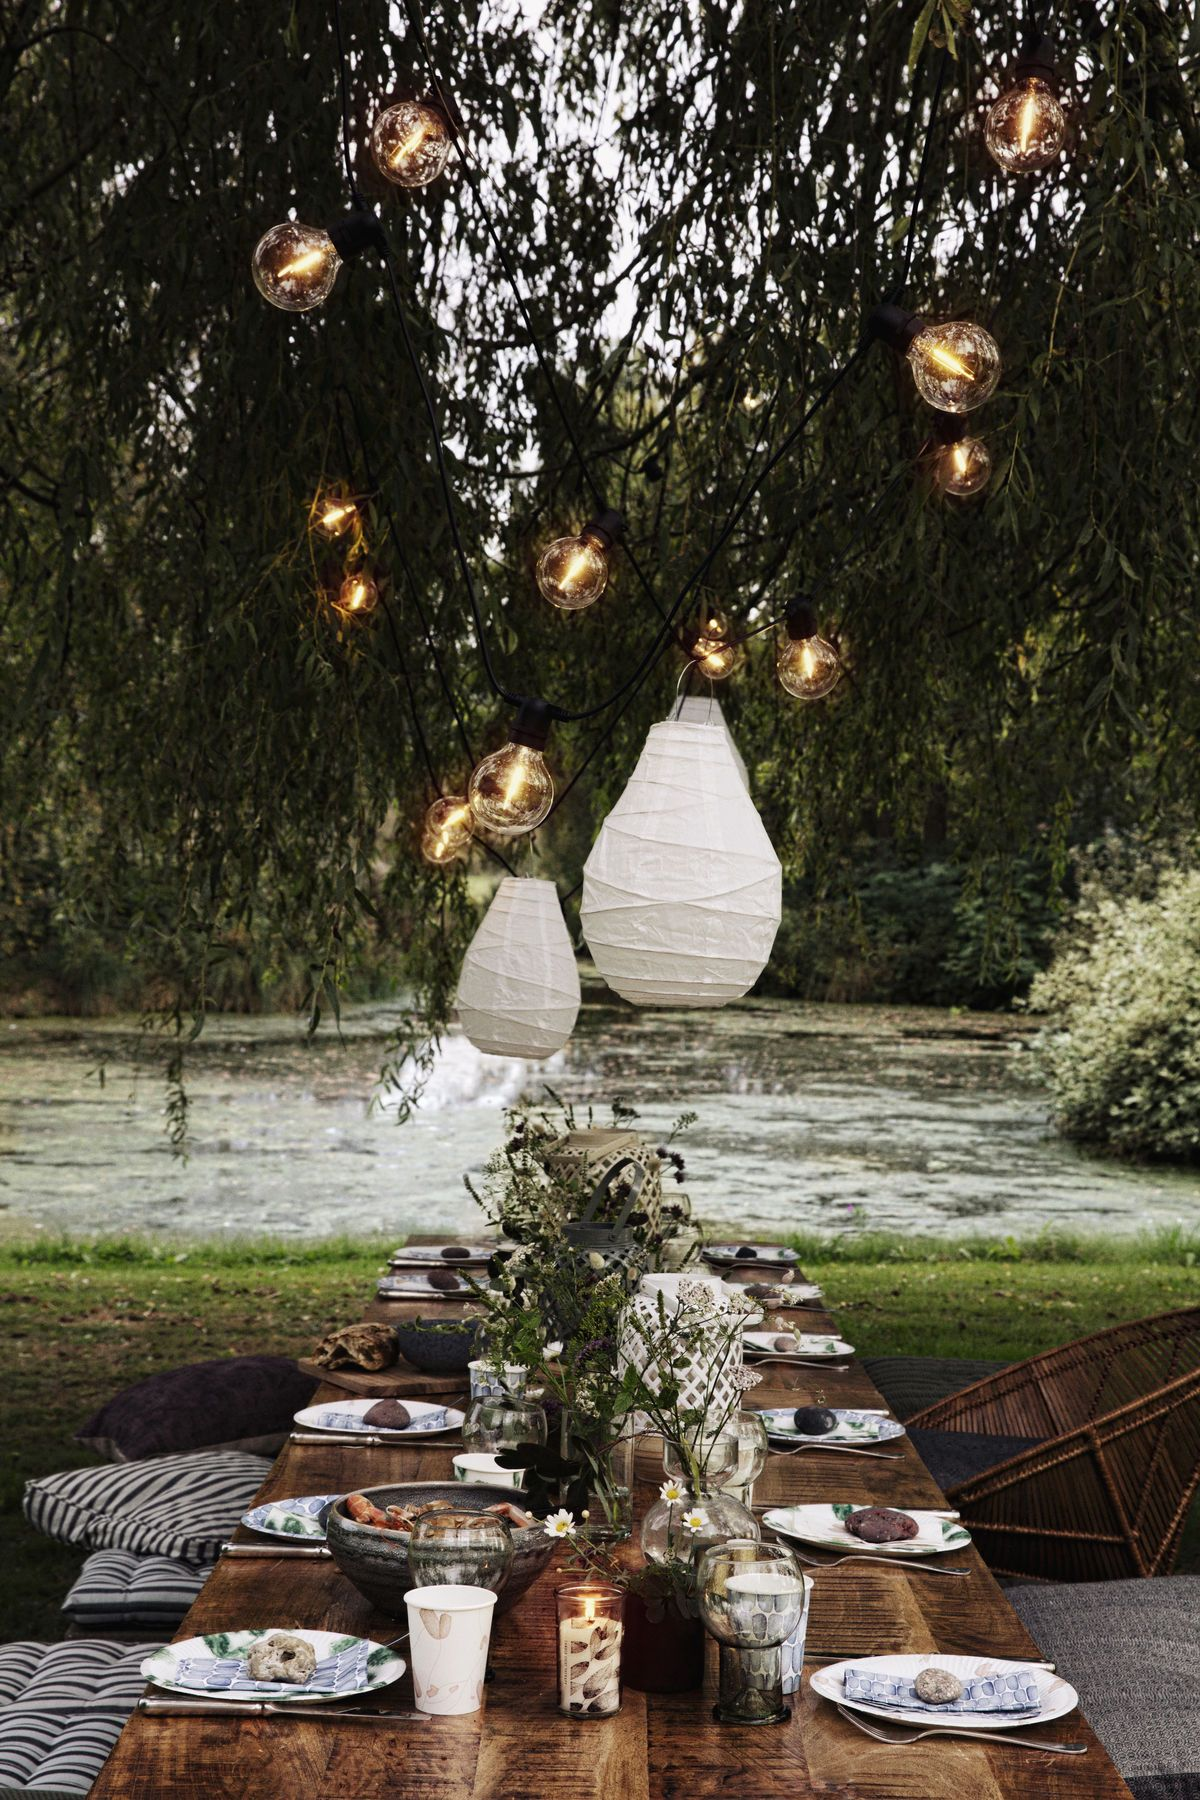 Eating outdoors is one of the many joys of summer. It's about bringing people together, eating, talking and laughing. Let your guests feel relaxed by keeping it simple. Disposable tableware mixed with glass, ceramics and wooden details set a casual atmosphere – while it ensures super-easy clean-up.